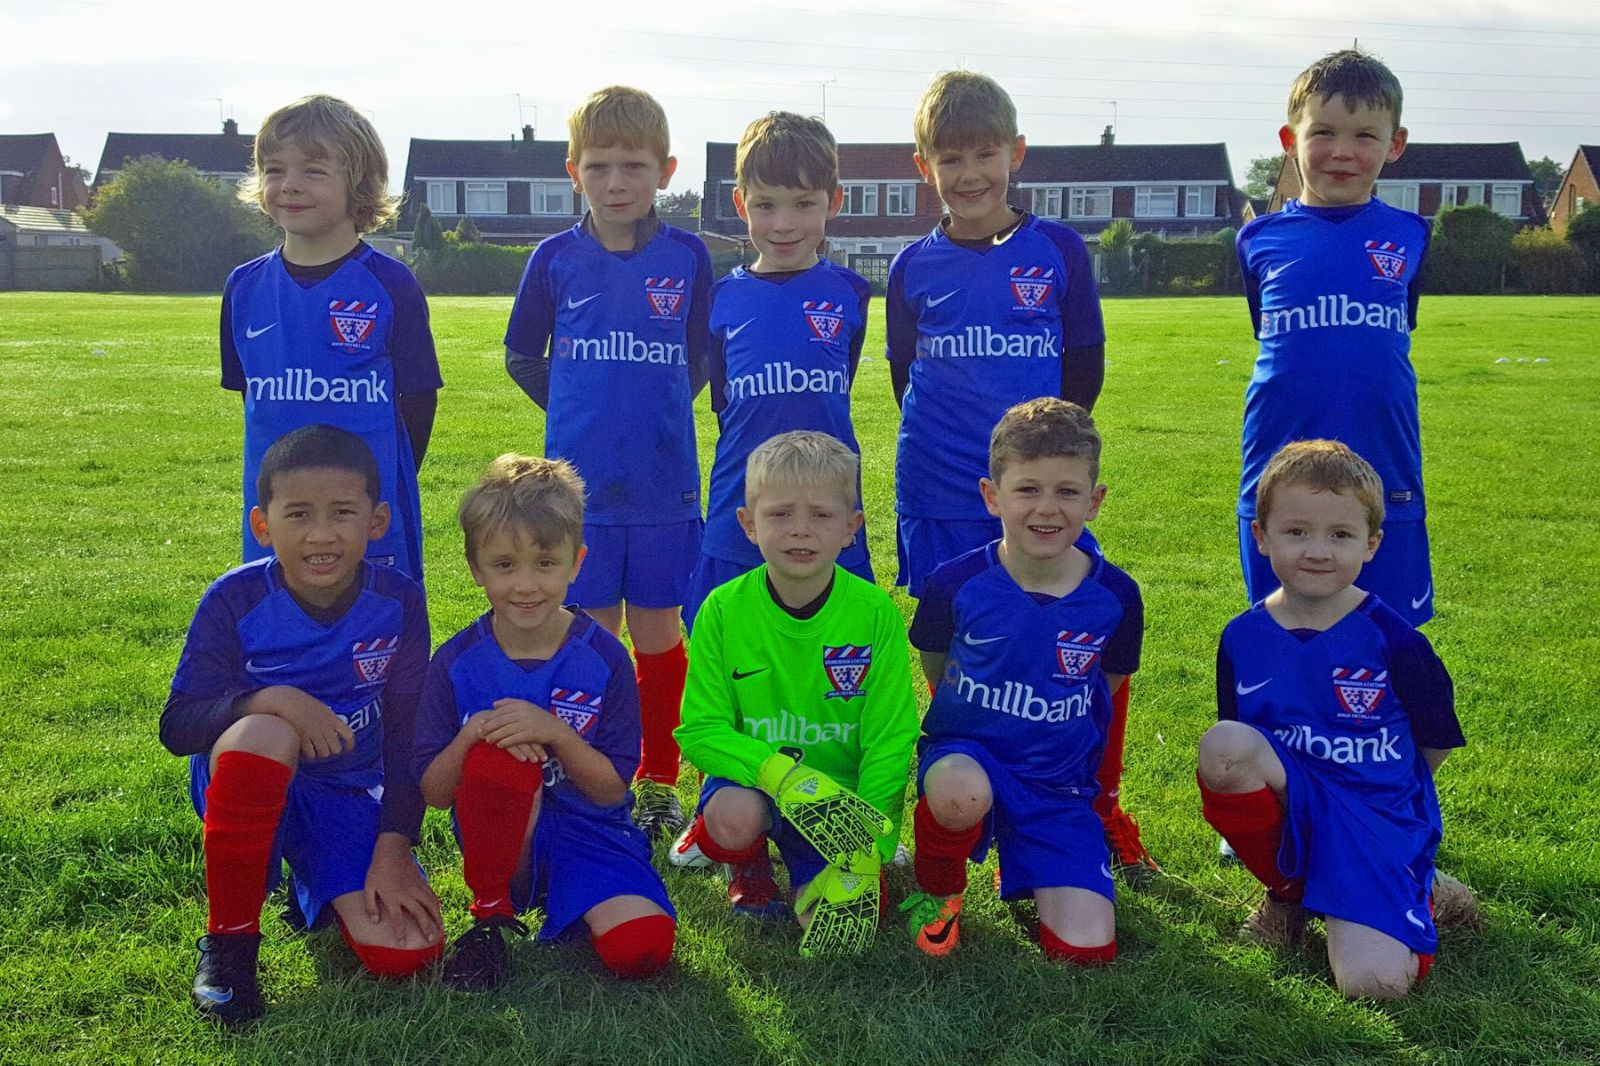 Bromborough & Eastham JFC